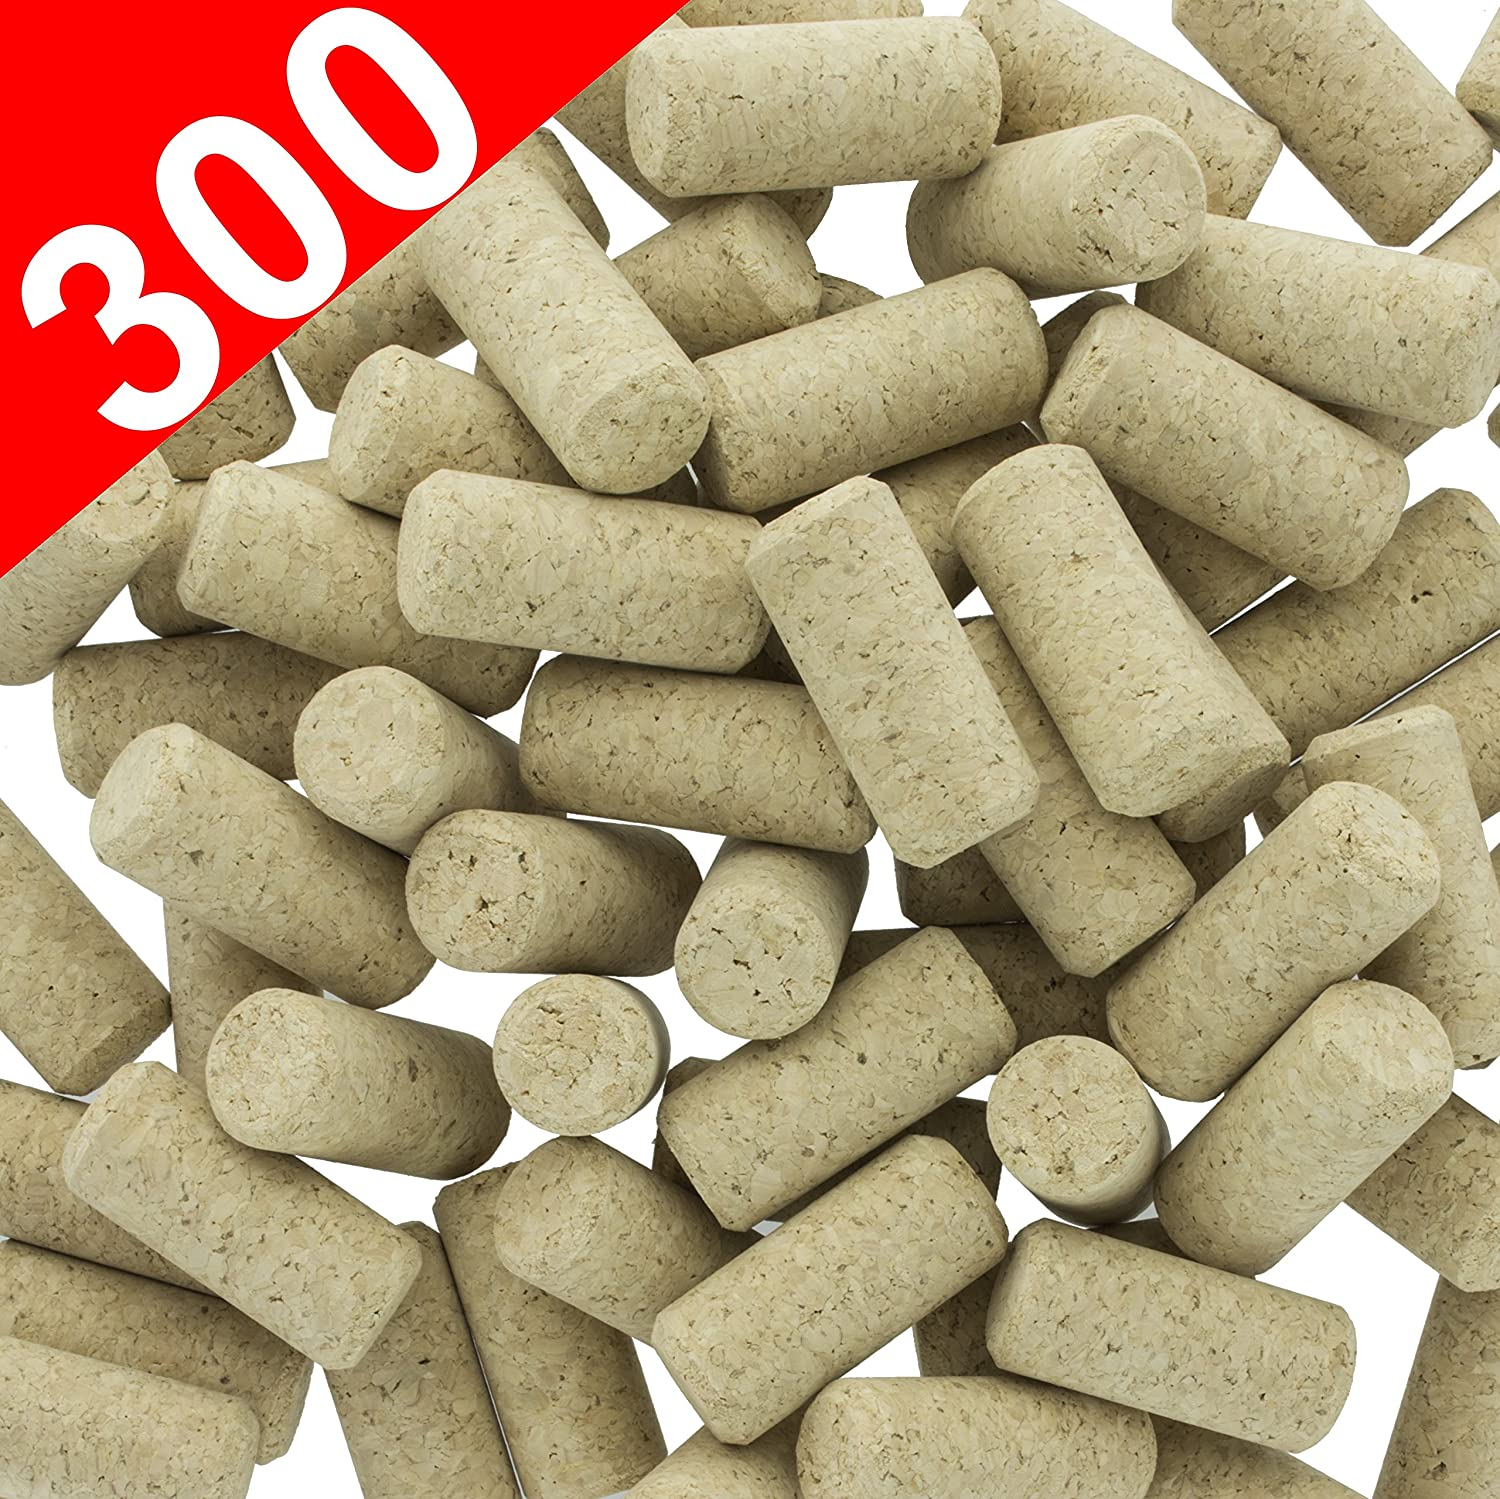 200 New Blank Wine Corks - #9 Agglomerated Natural Cork for Corking Home Wine Making Bottles With Corker or Bulk Craft Corks & Art Supply Winecorks (Corks200) Goodmanns